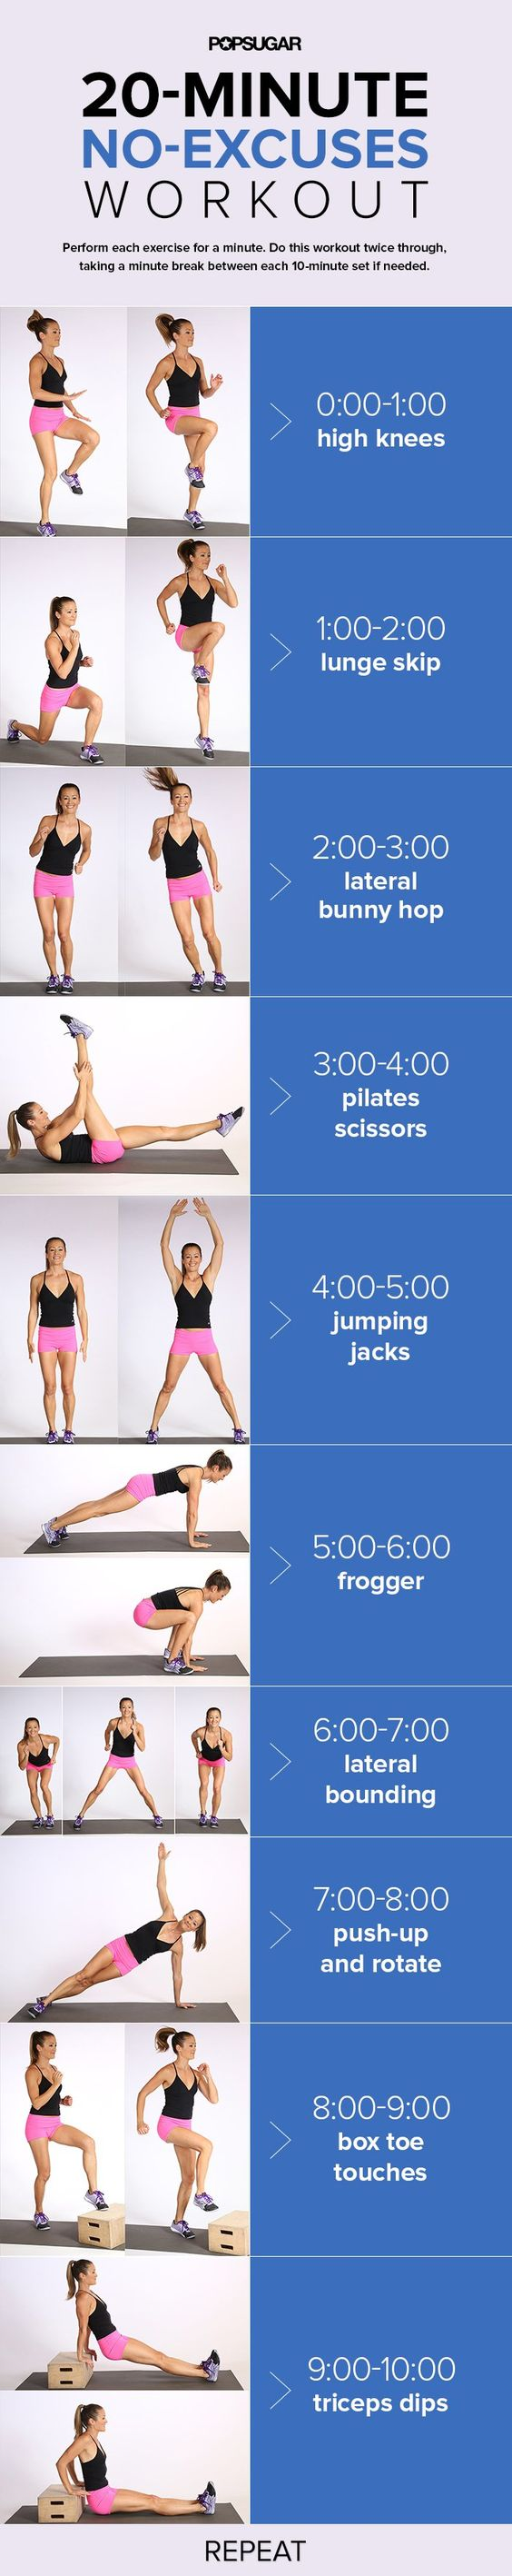 Circuit Training Workout To Blast Fat And Get Lean